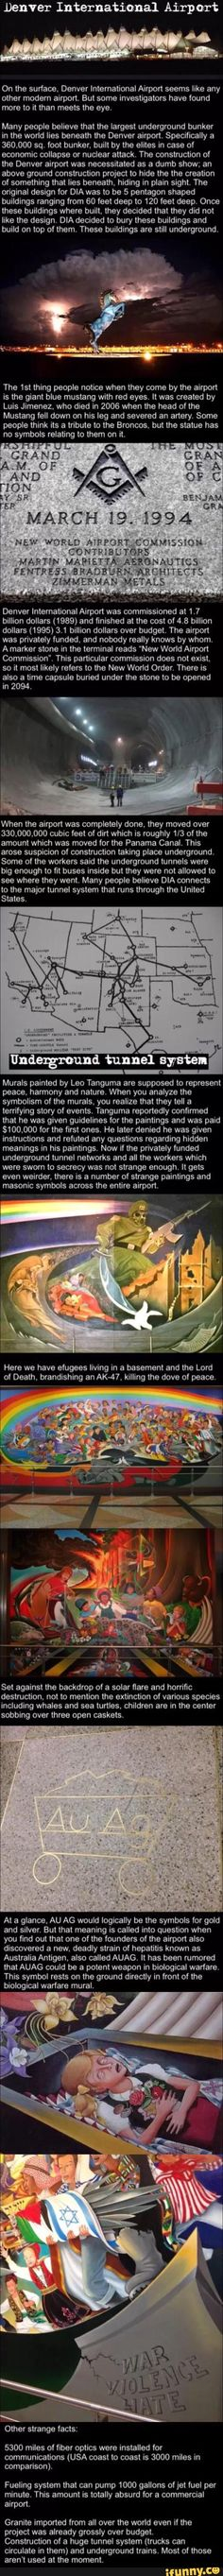 Does the airport contains a series of murals symbolizing the Illuminati plan for genocide? I've been to DIA, and ive been to airports around the world, it left me feeling uneasy, to say the least. Weird Facts, Fun Facts, Strange Facts, Atlantis, Aliens, Freemasonry, New World Order, Conspiracy Theories, Illuminati